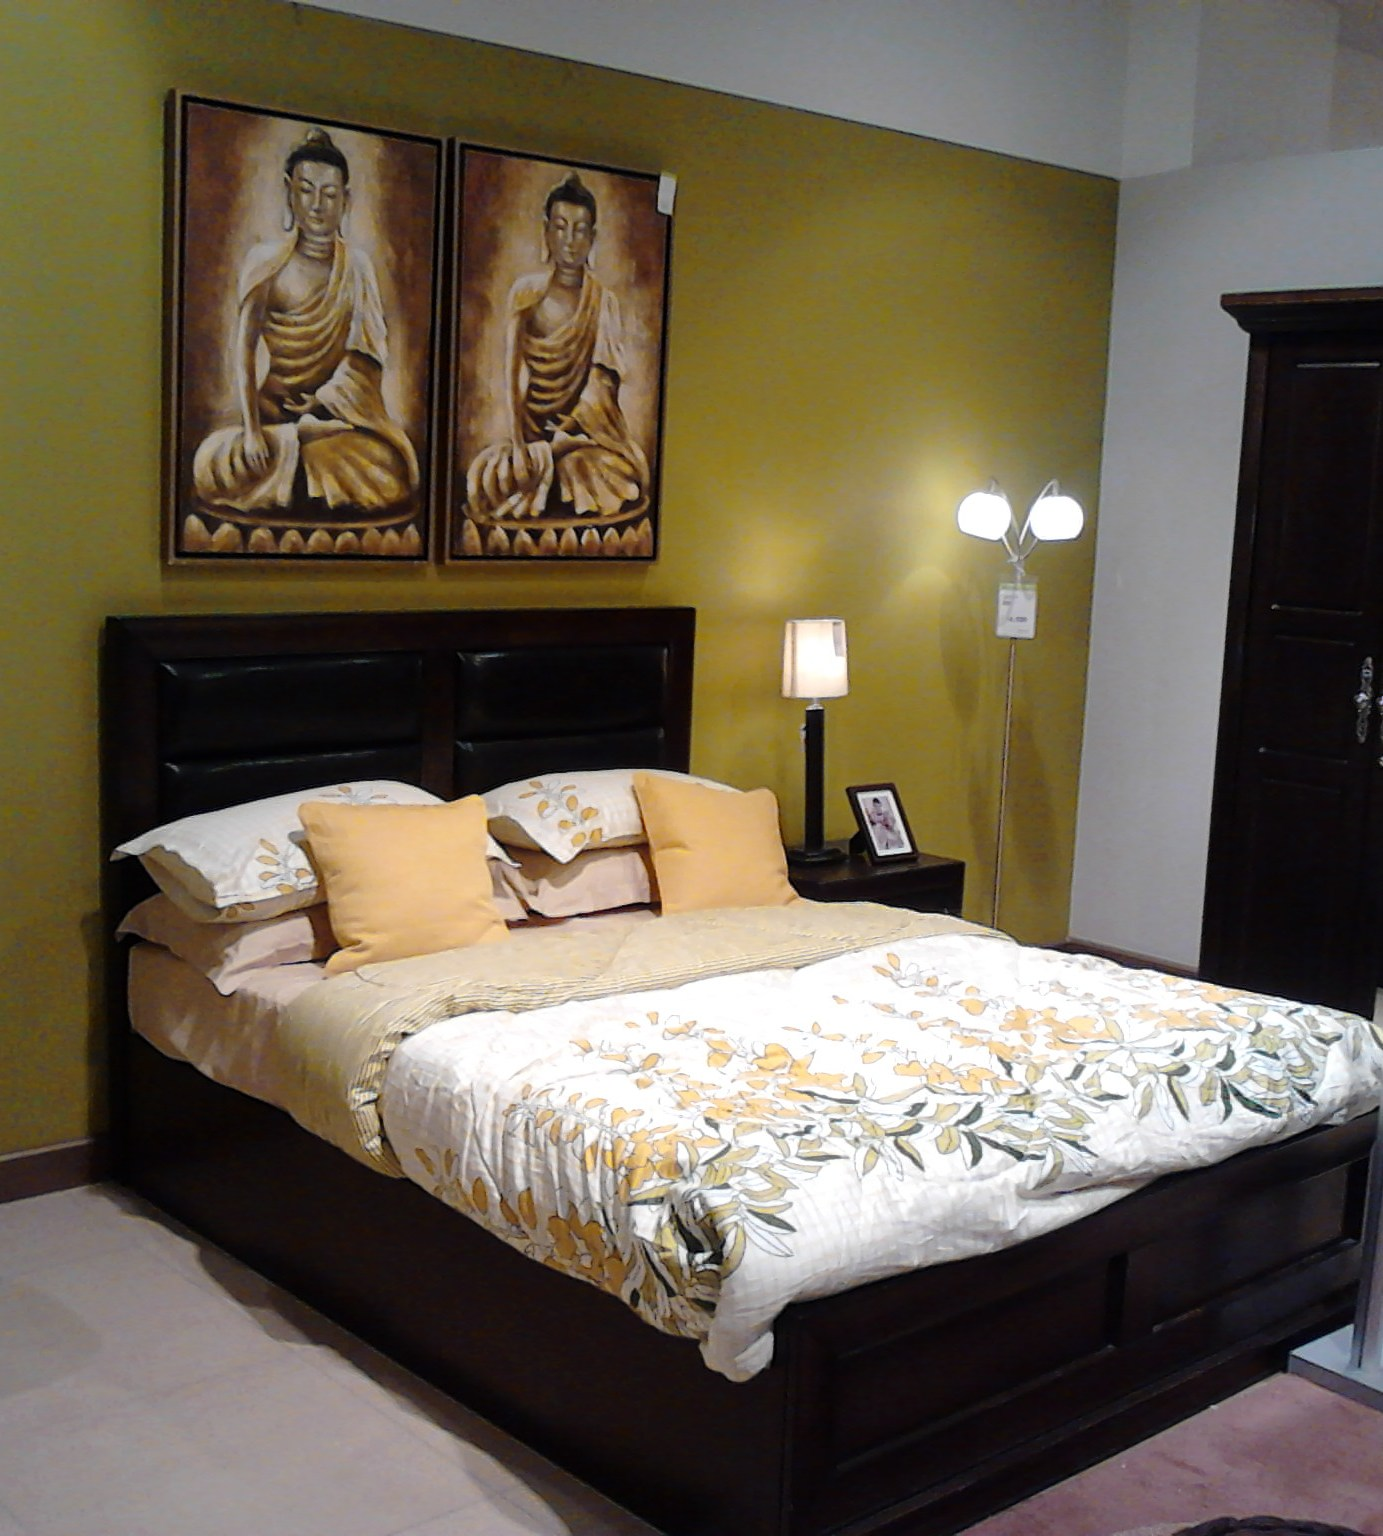 feng shui simple cures biggest bedroom feng shui going wrong buddha paintings feng shui tips. Black Bedroom Furniture Sets. Home Design Ideas